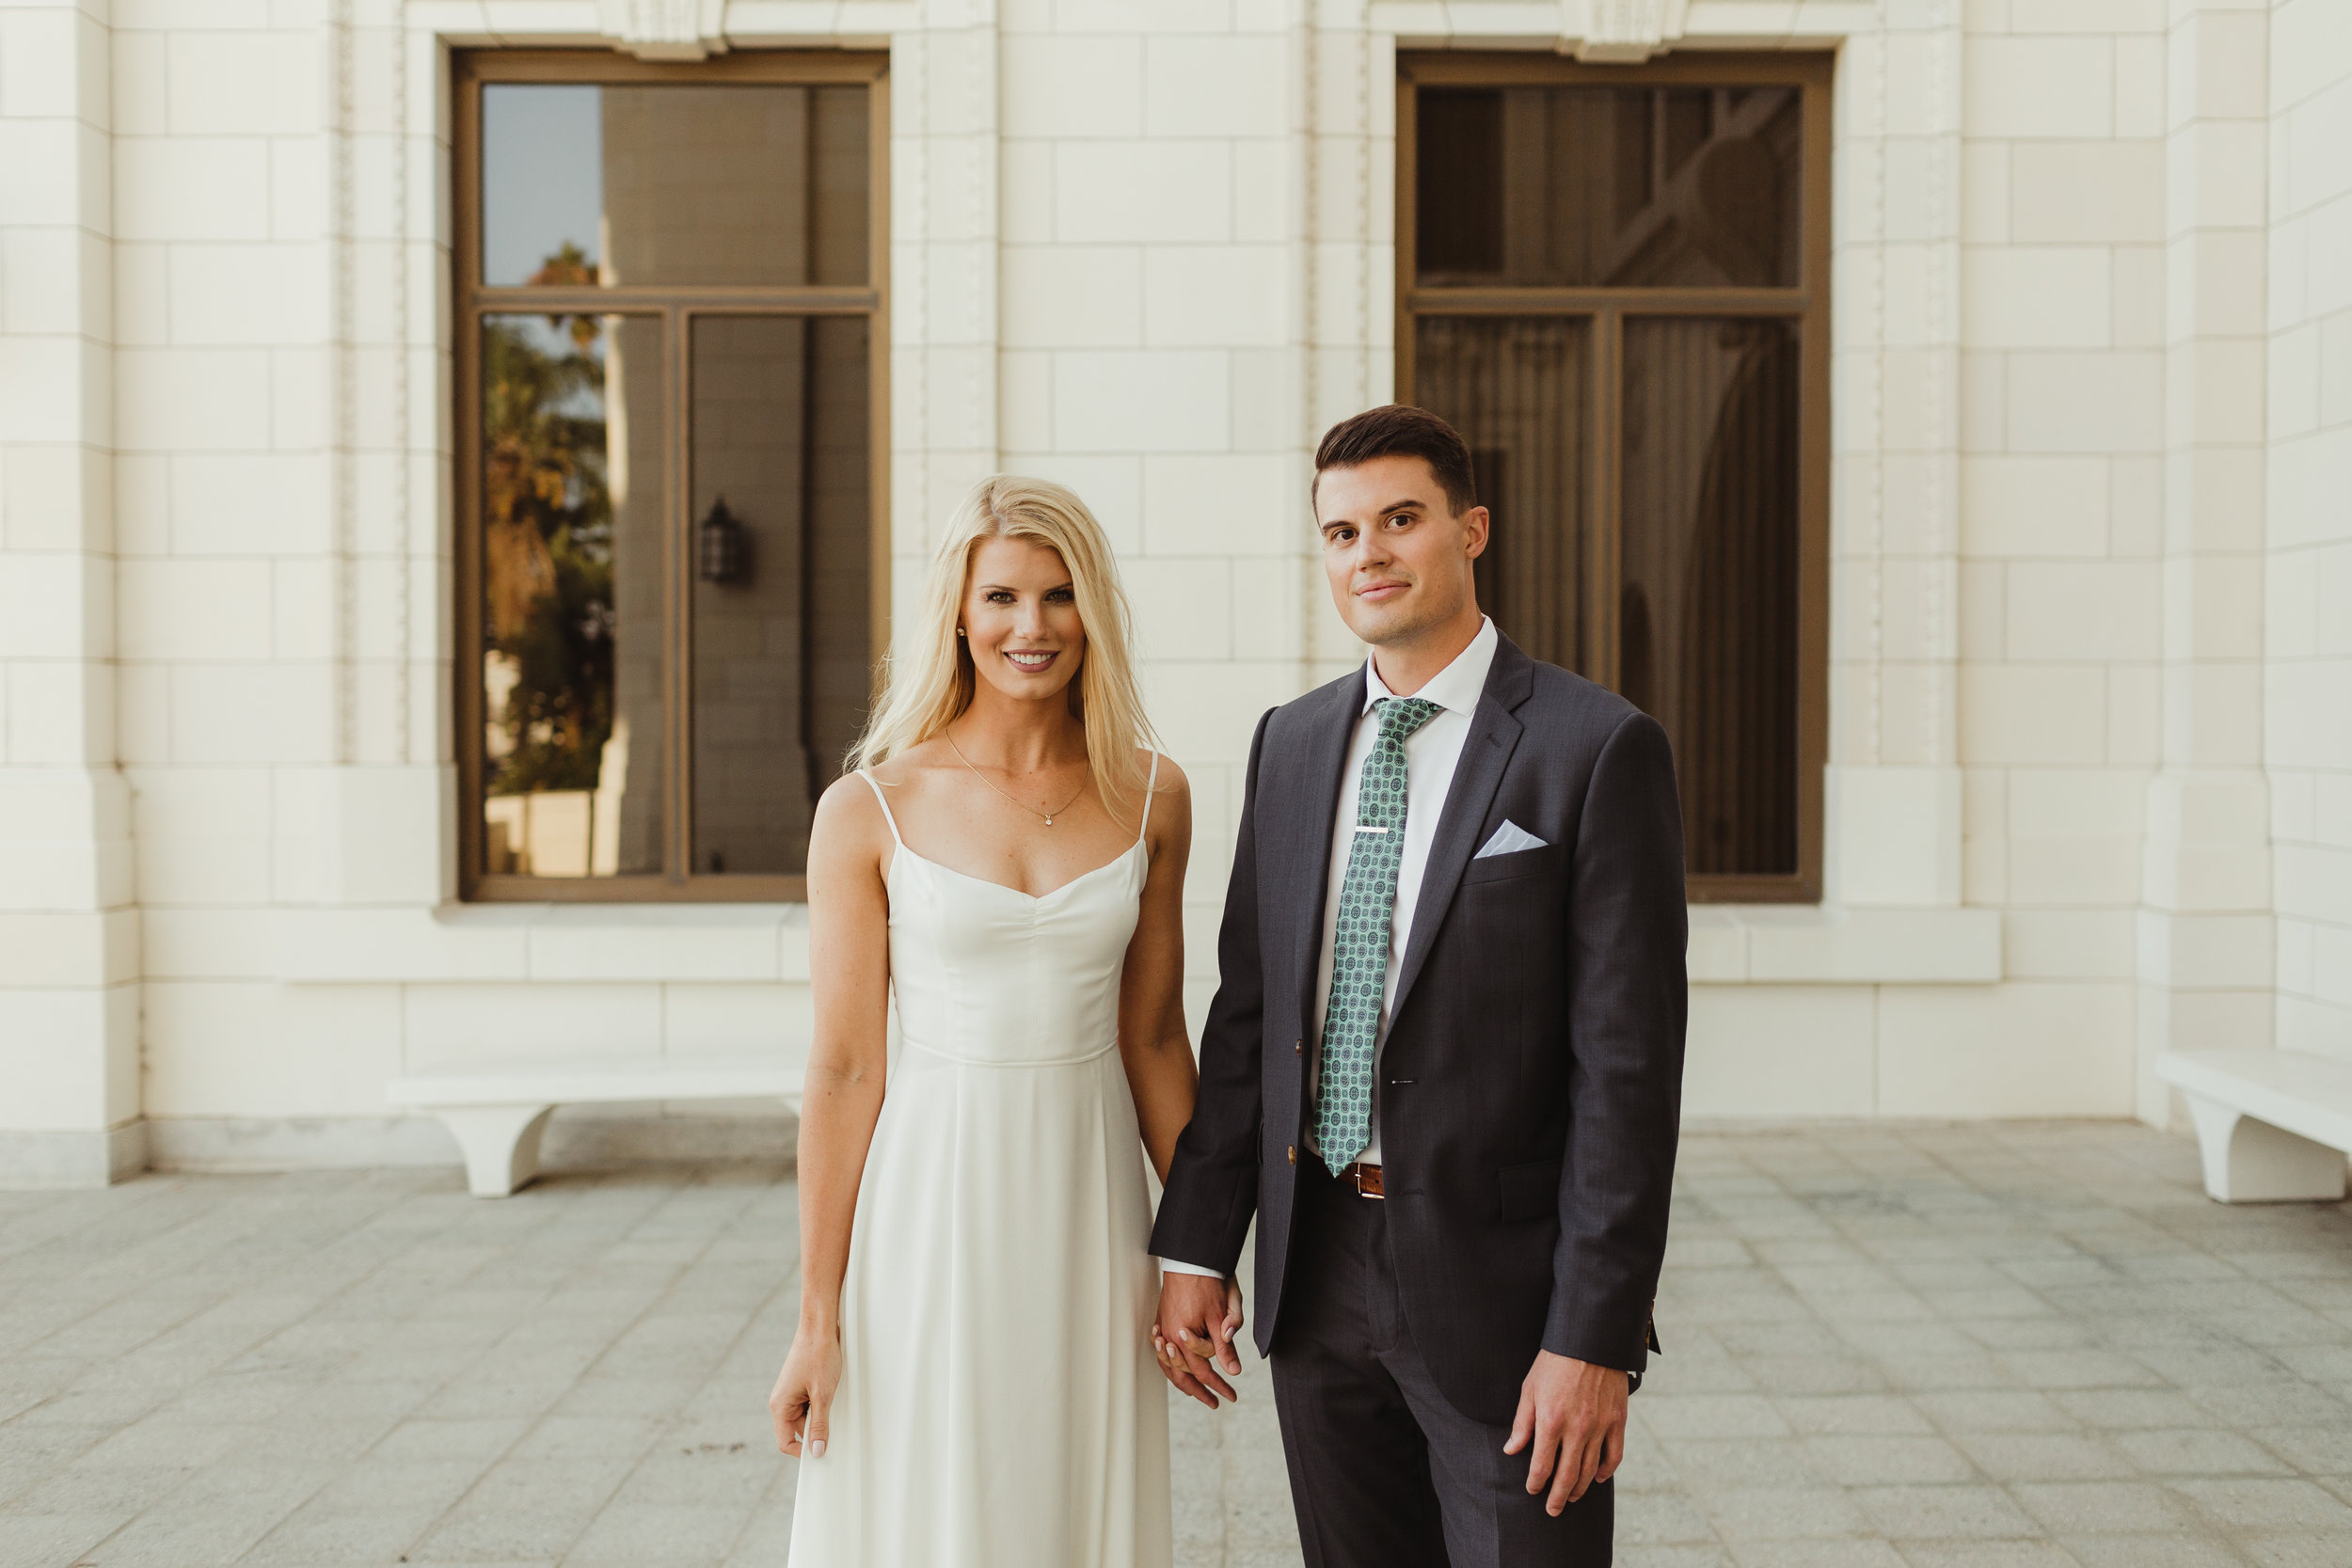 Ventura California Courthouse Engagement Shoot Photographed by Hannah Costello